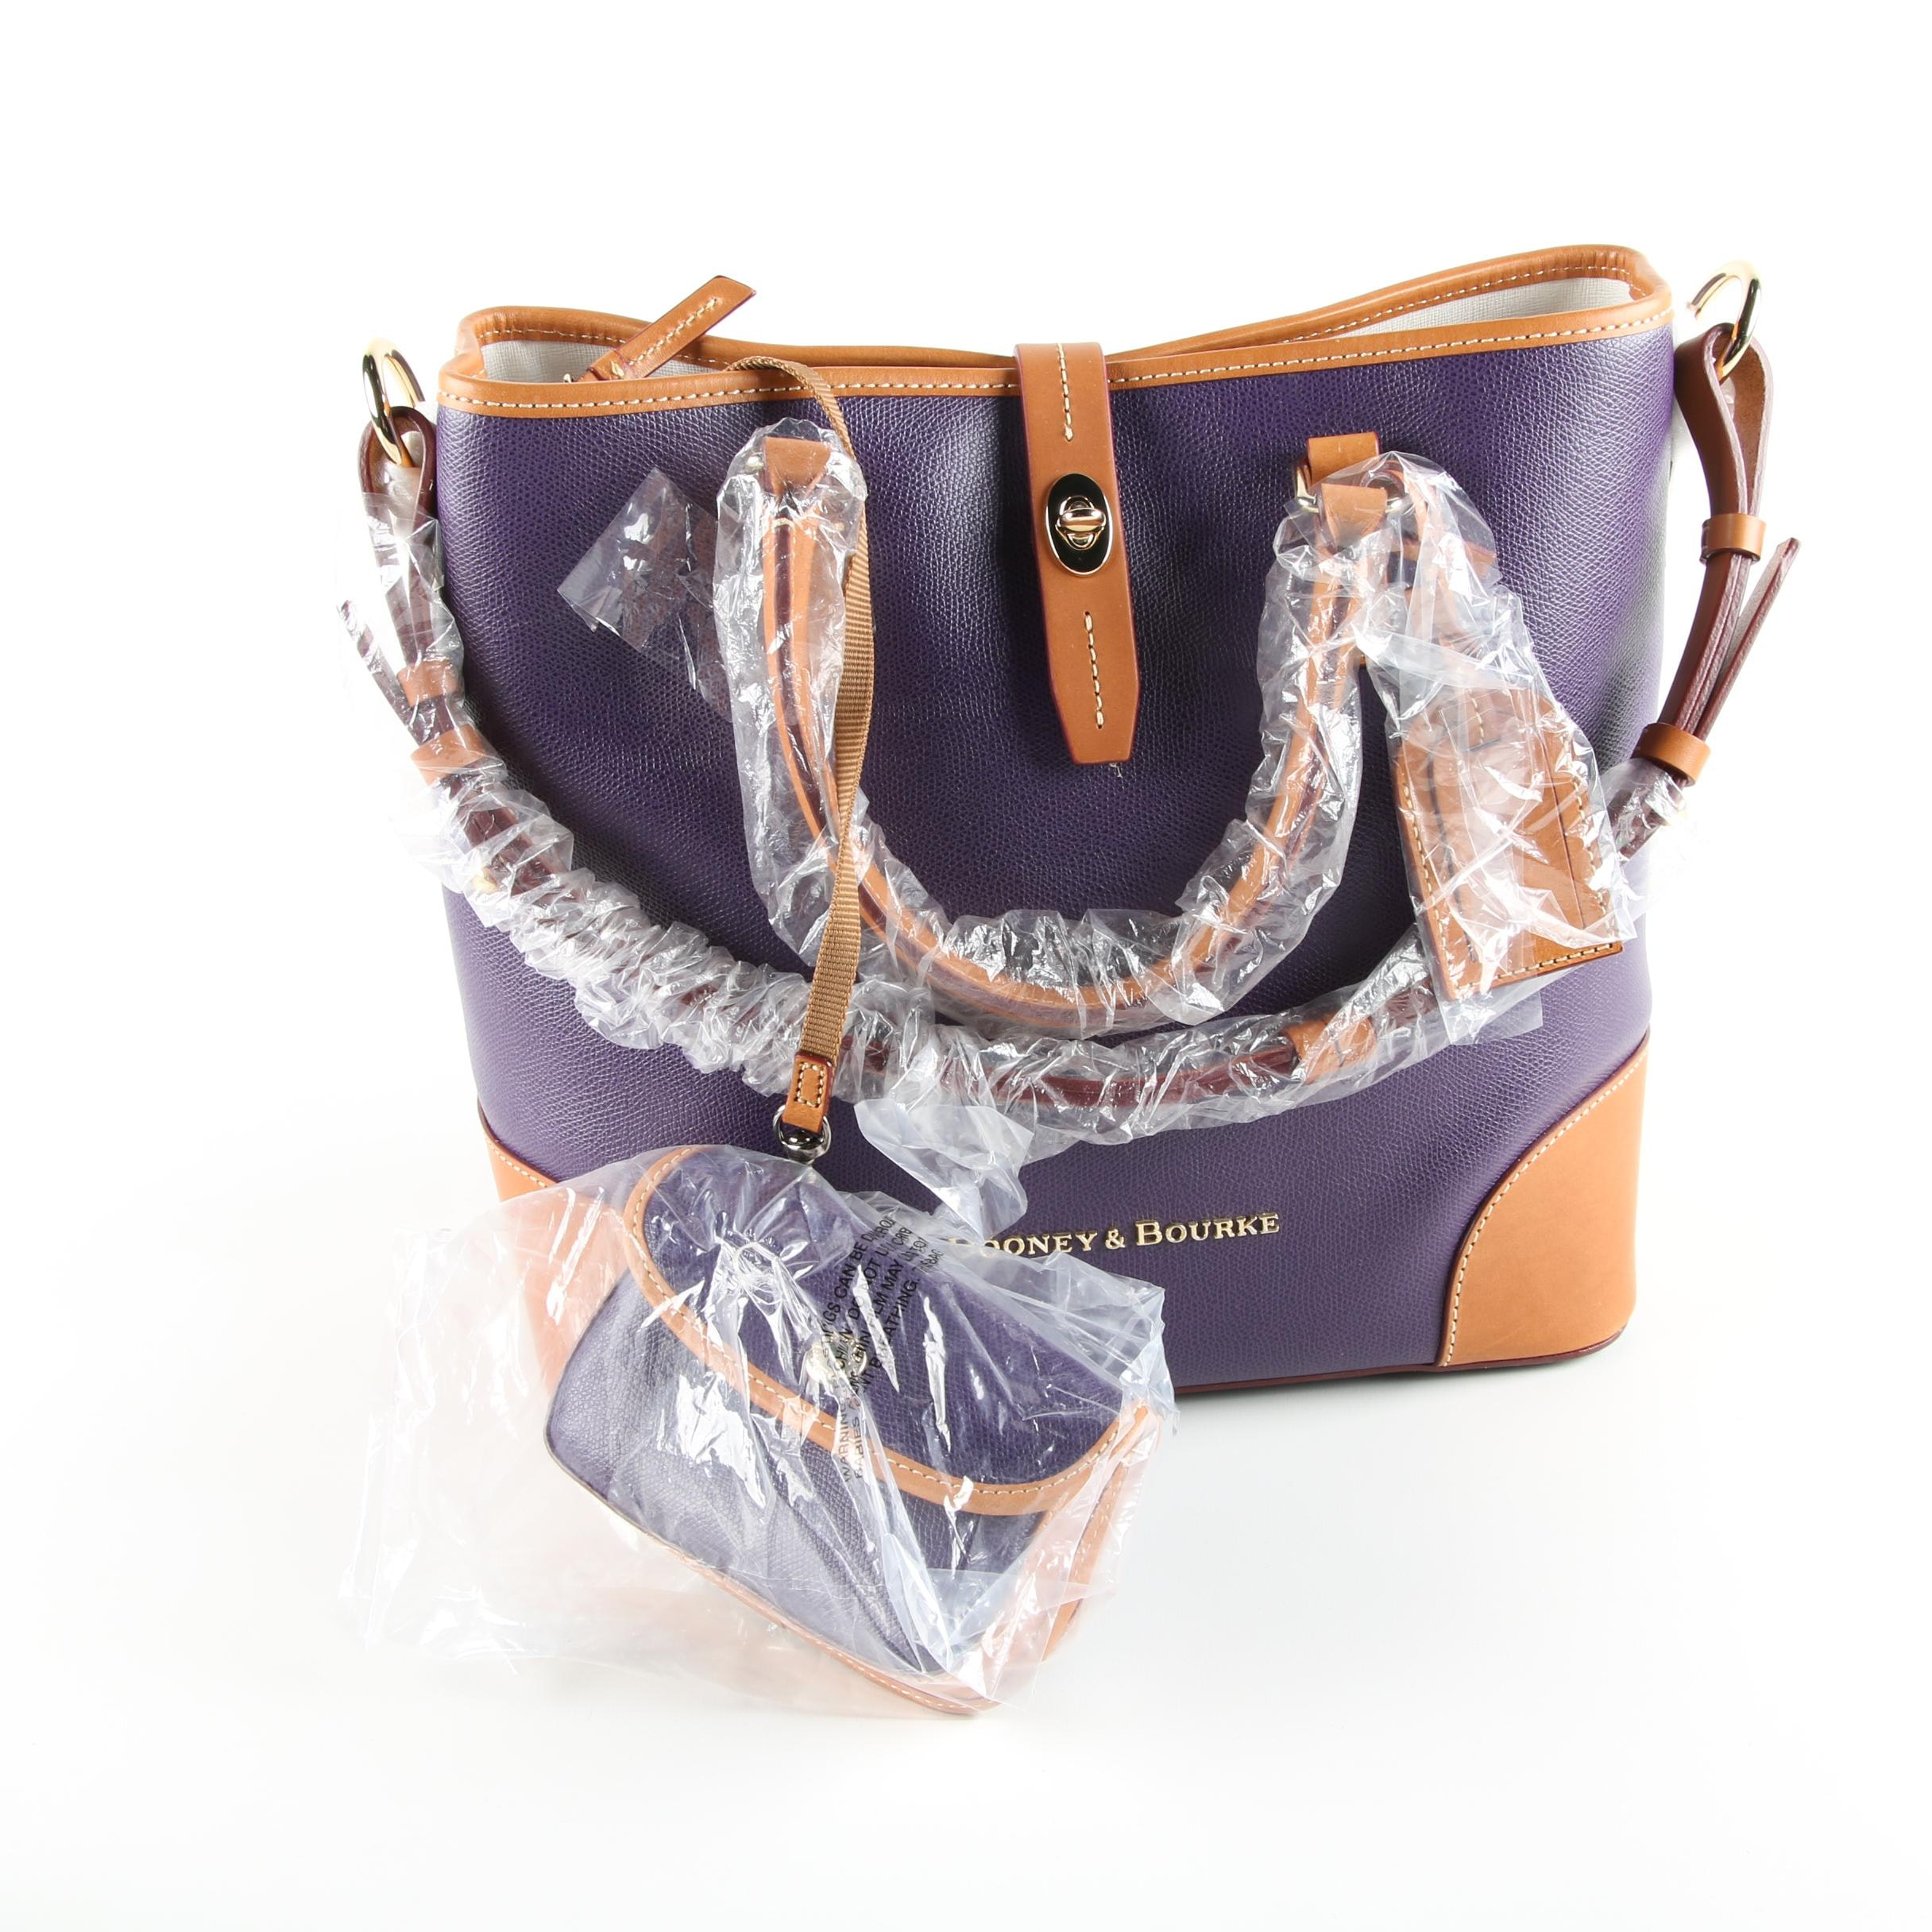 Dooney & Bourke Embossed Leather Shelby Shopper With Wristlet